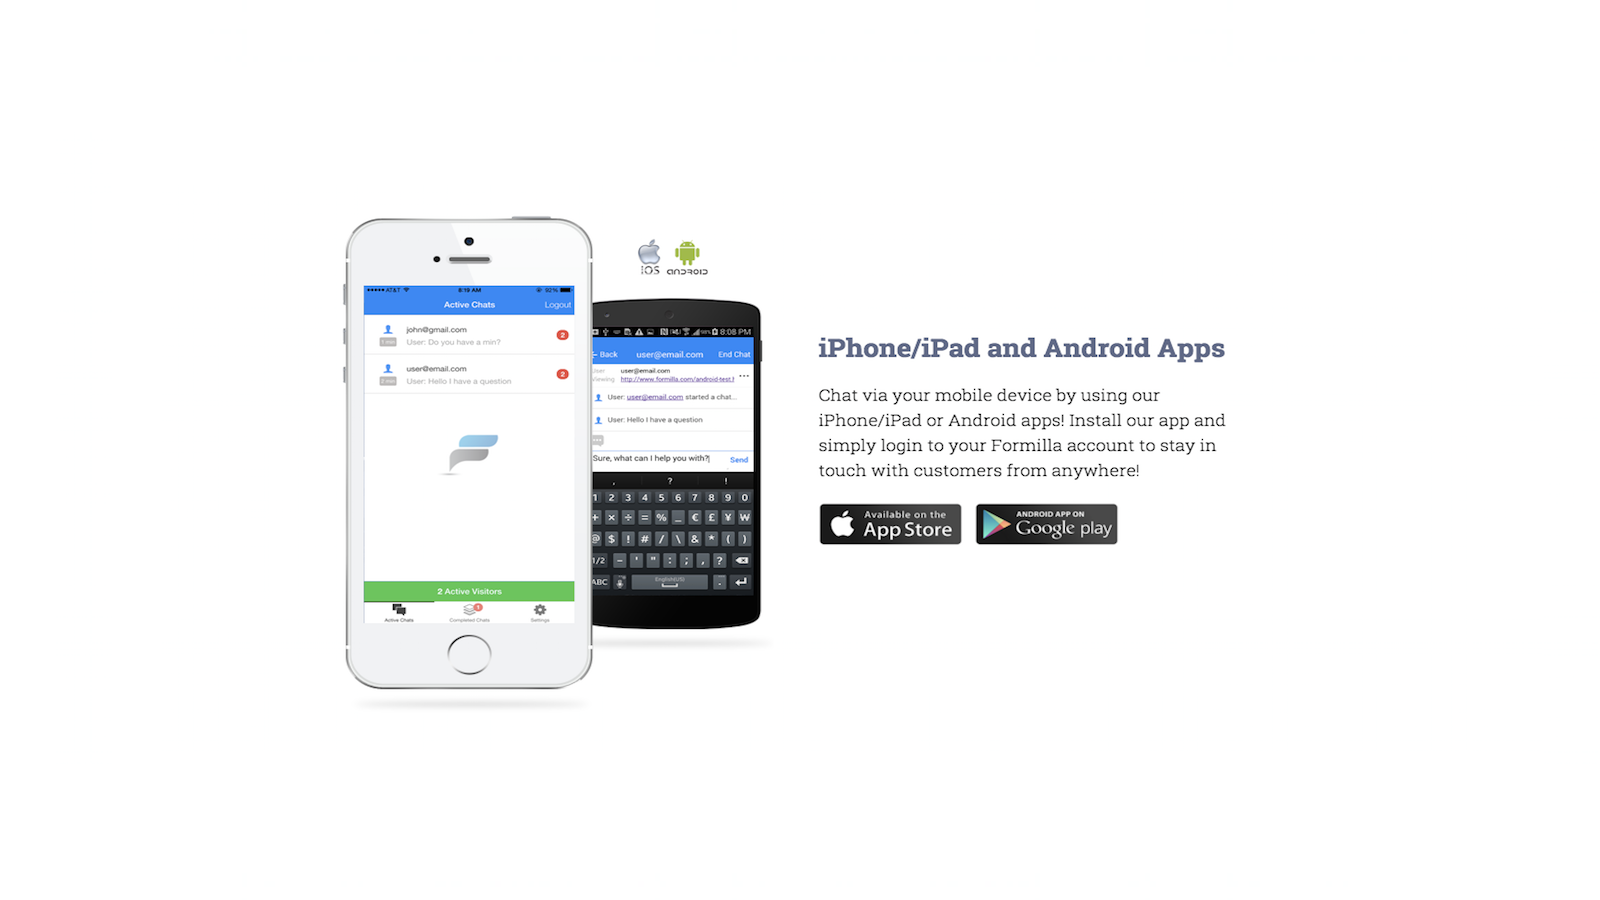 Mobile Apps for iPhone and Android